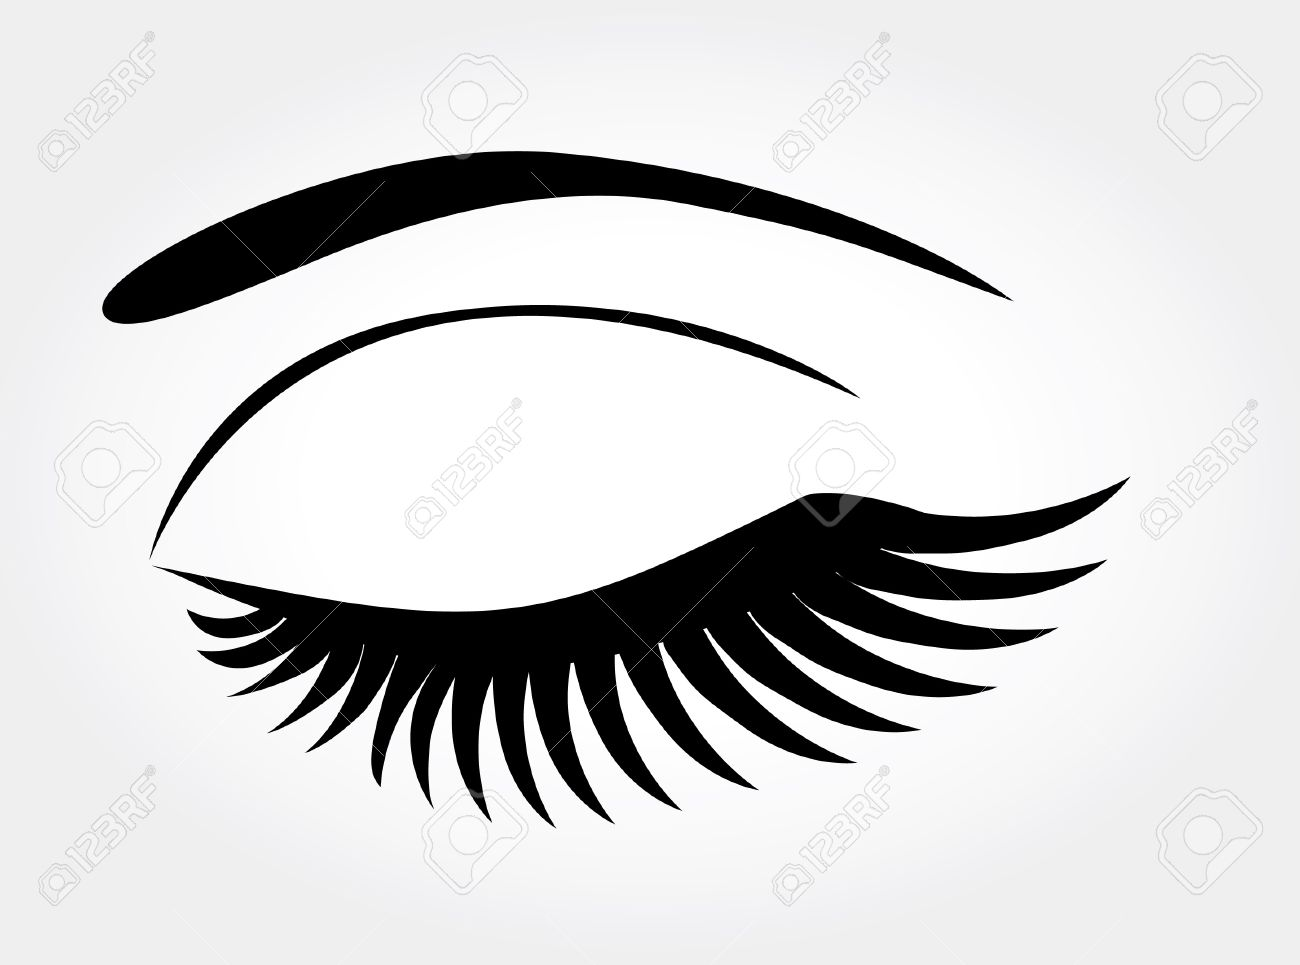 Eye lashes clipart.